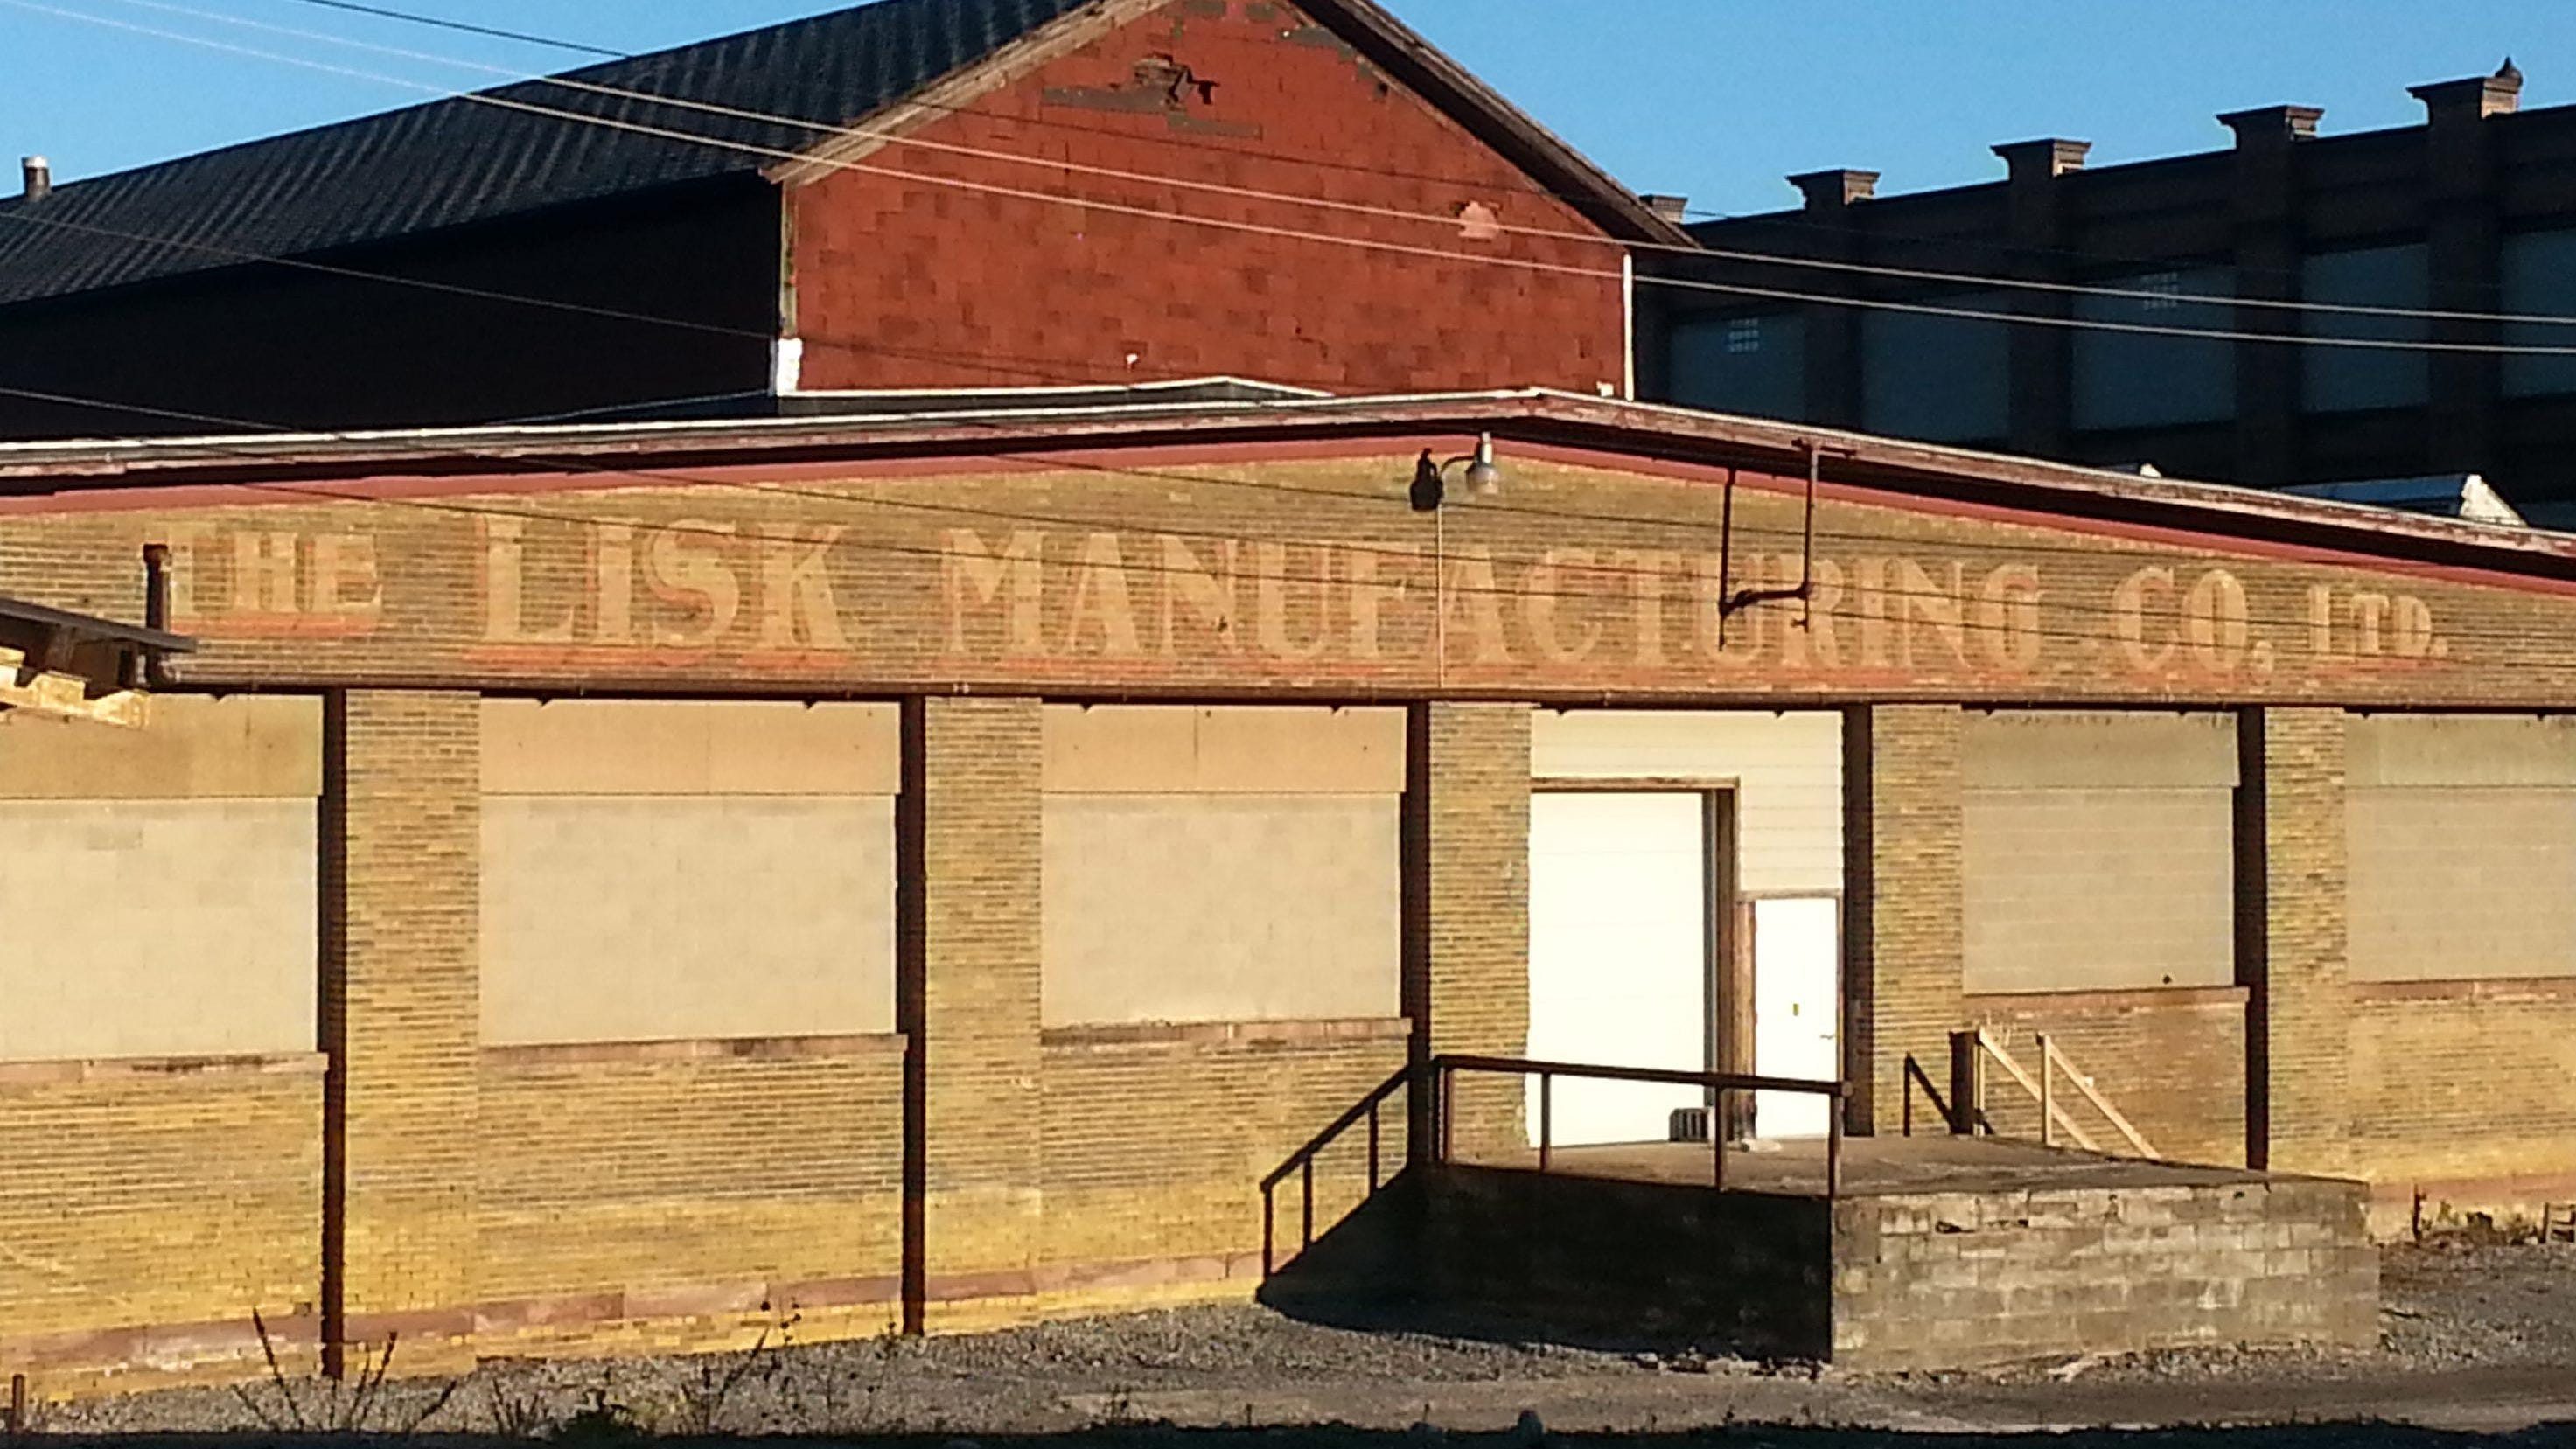 Here is how the soon-to-open Working Class Coffee in Canandaigua used to look, before work to redevelop the Lisk manufacturing site began.